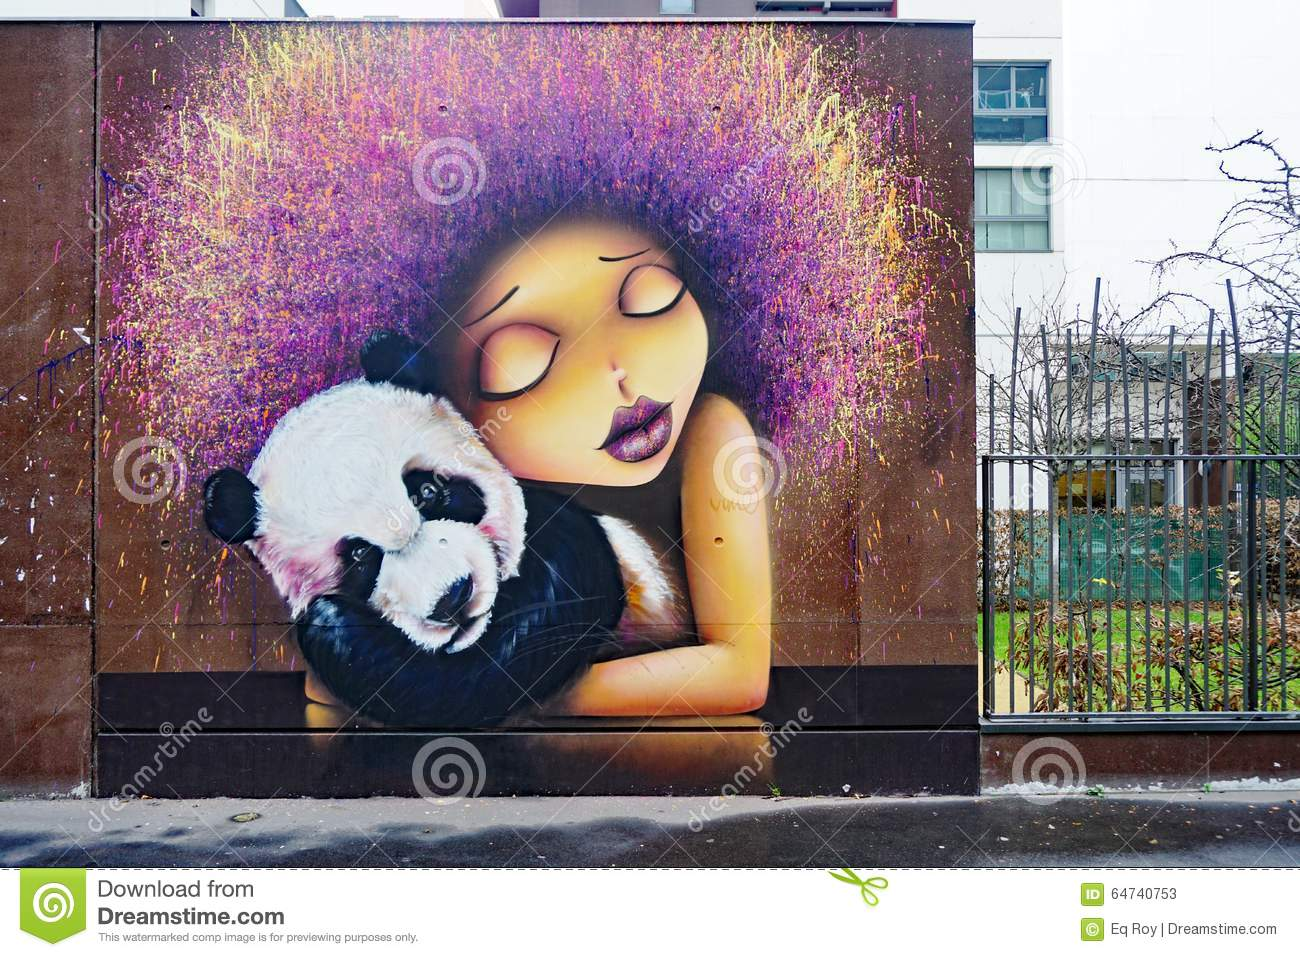 Street Wall Painting - Street art wall painting of a girl with a panda in paris